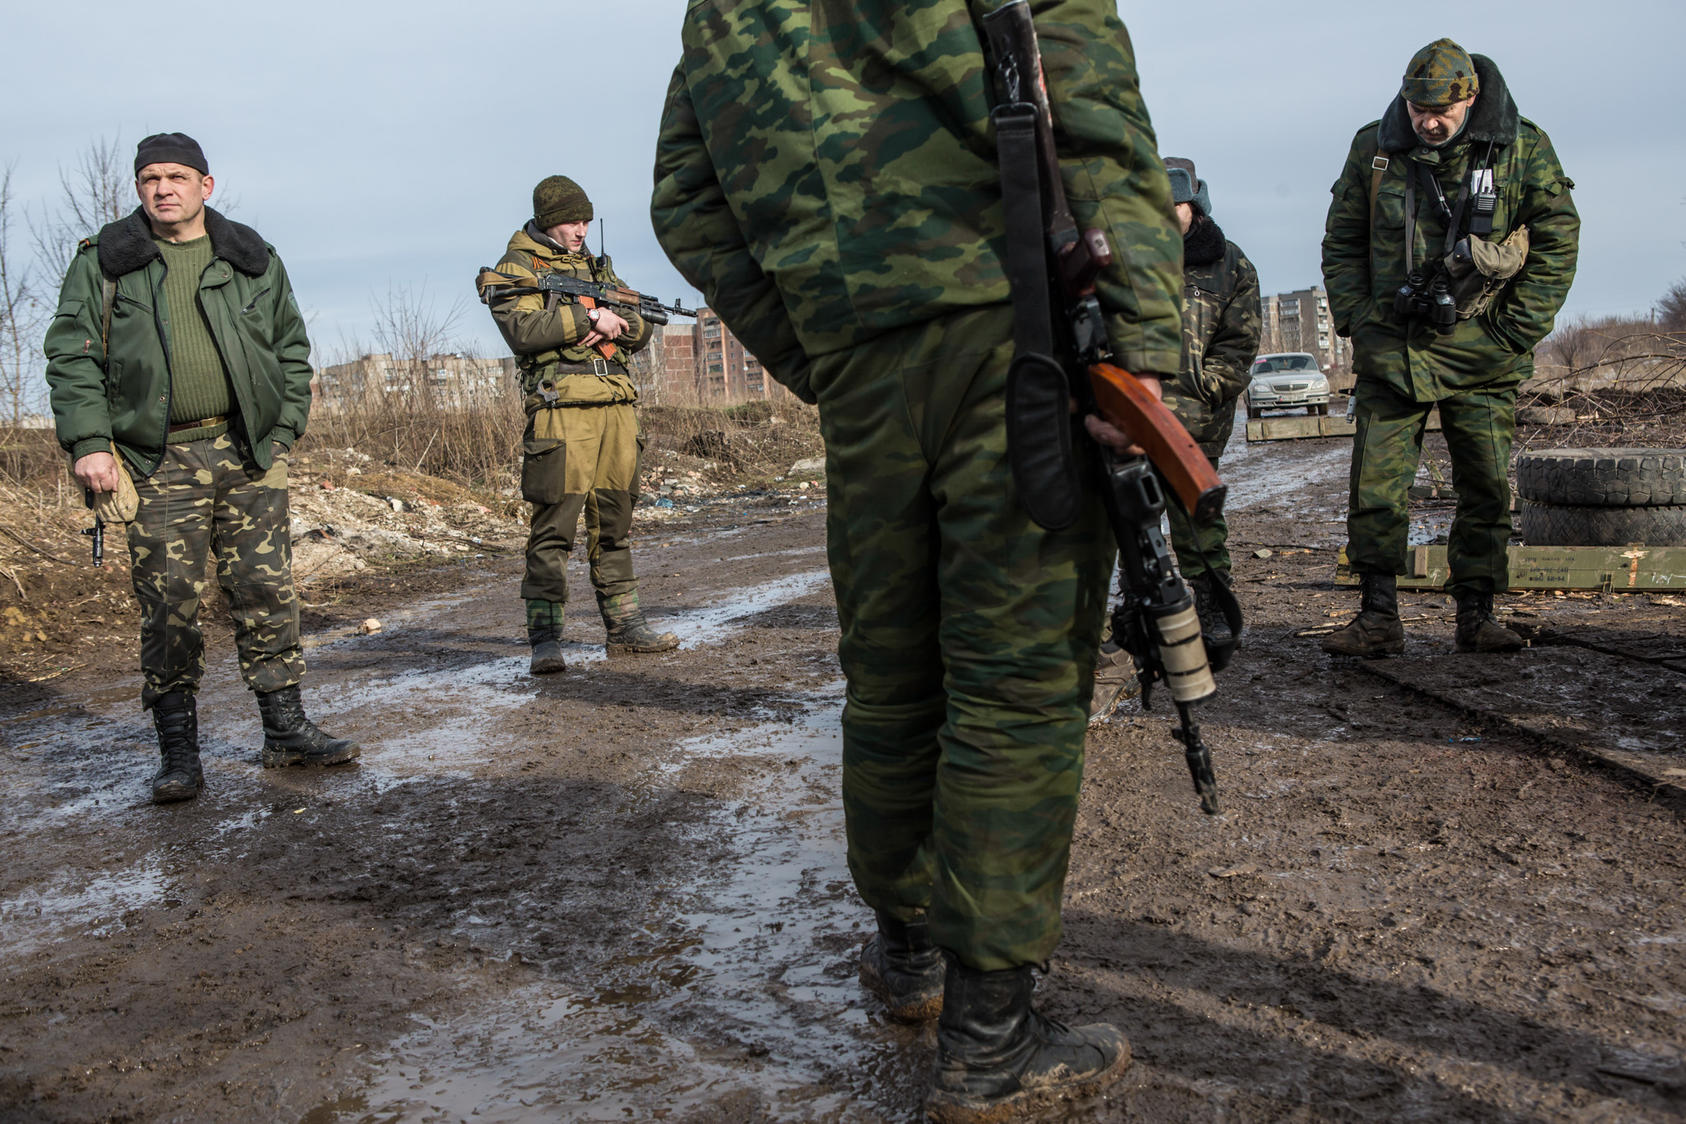 Pro-Russian rebel fighters at a front-line position in Gorlovka, Ukraine, Jan. 31, 2015. Pro-Russian rebels recently captured the airport in Donetsk, kicking off the fiercest round of combat in the region since last fall, and their mood on the front lines is upbeat these days.